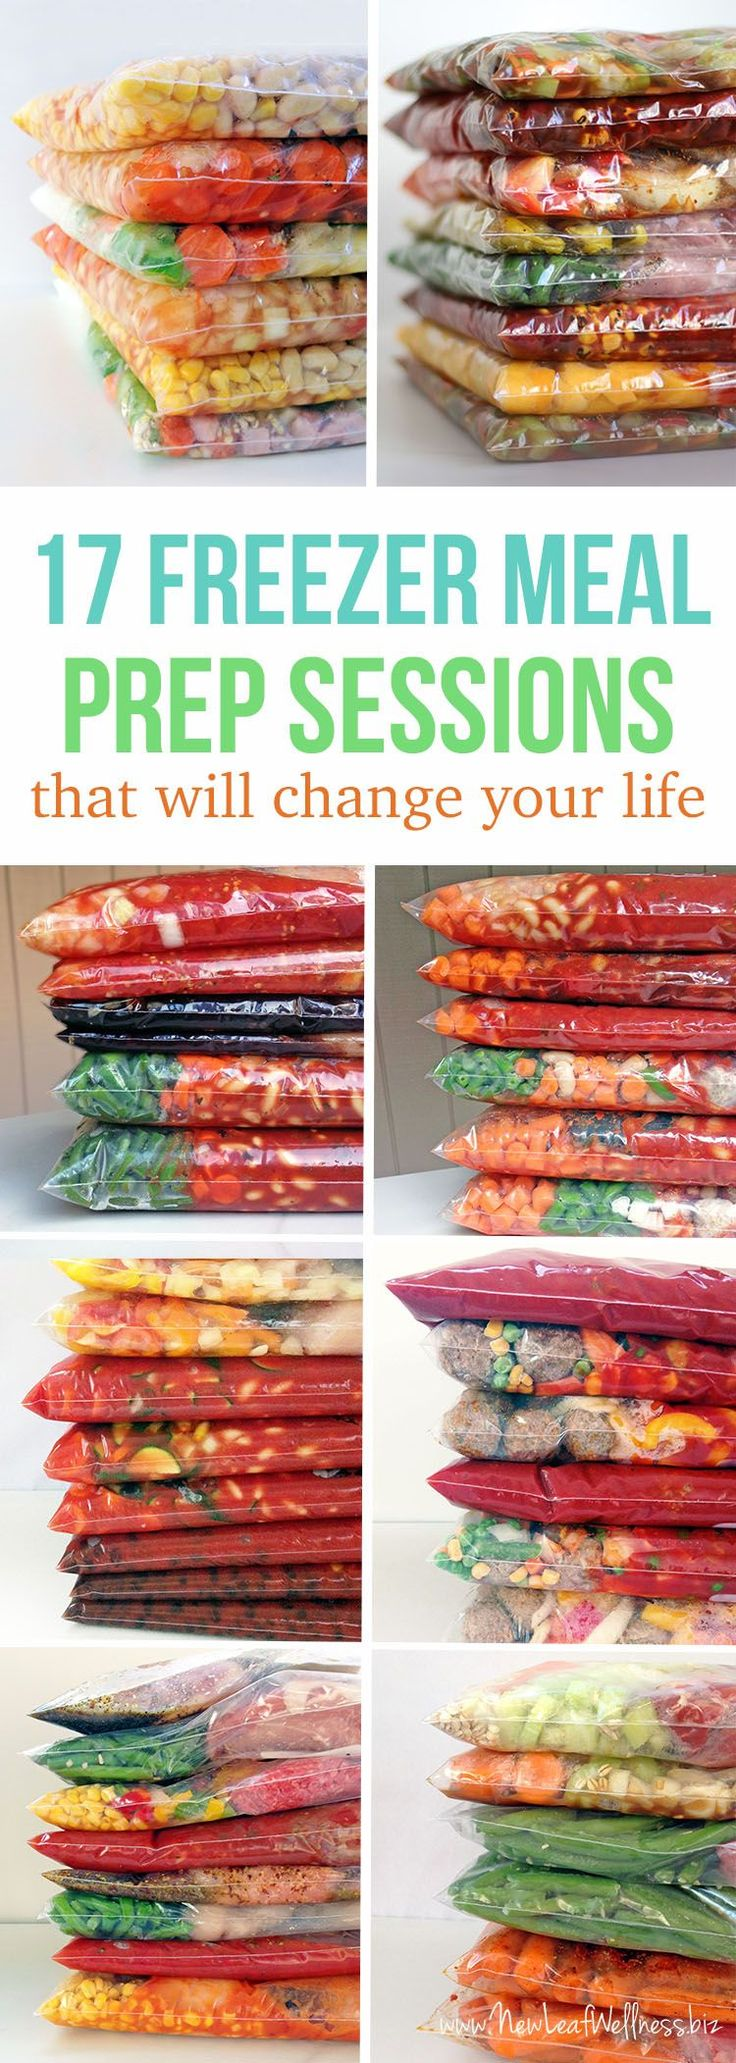 17 Freezer Meal Prep Sessions That Will Change Your Life (free grocery Lists and printable recipes included). Simply combine the ingredients in a gallon-sized bag and freeze!